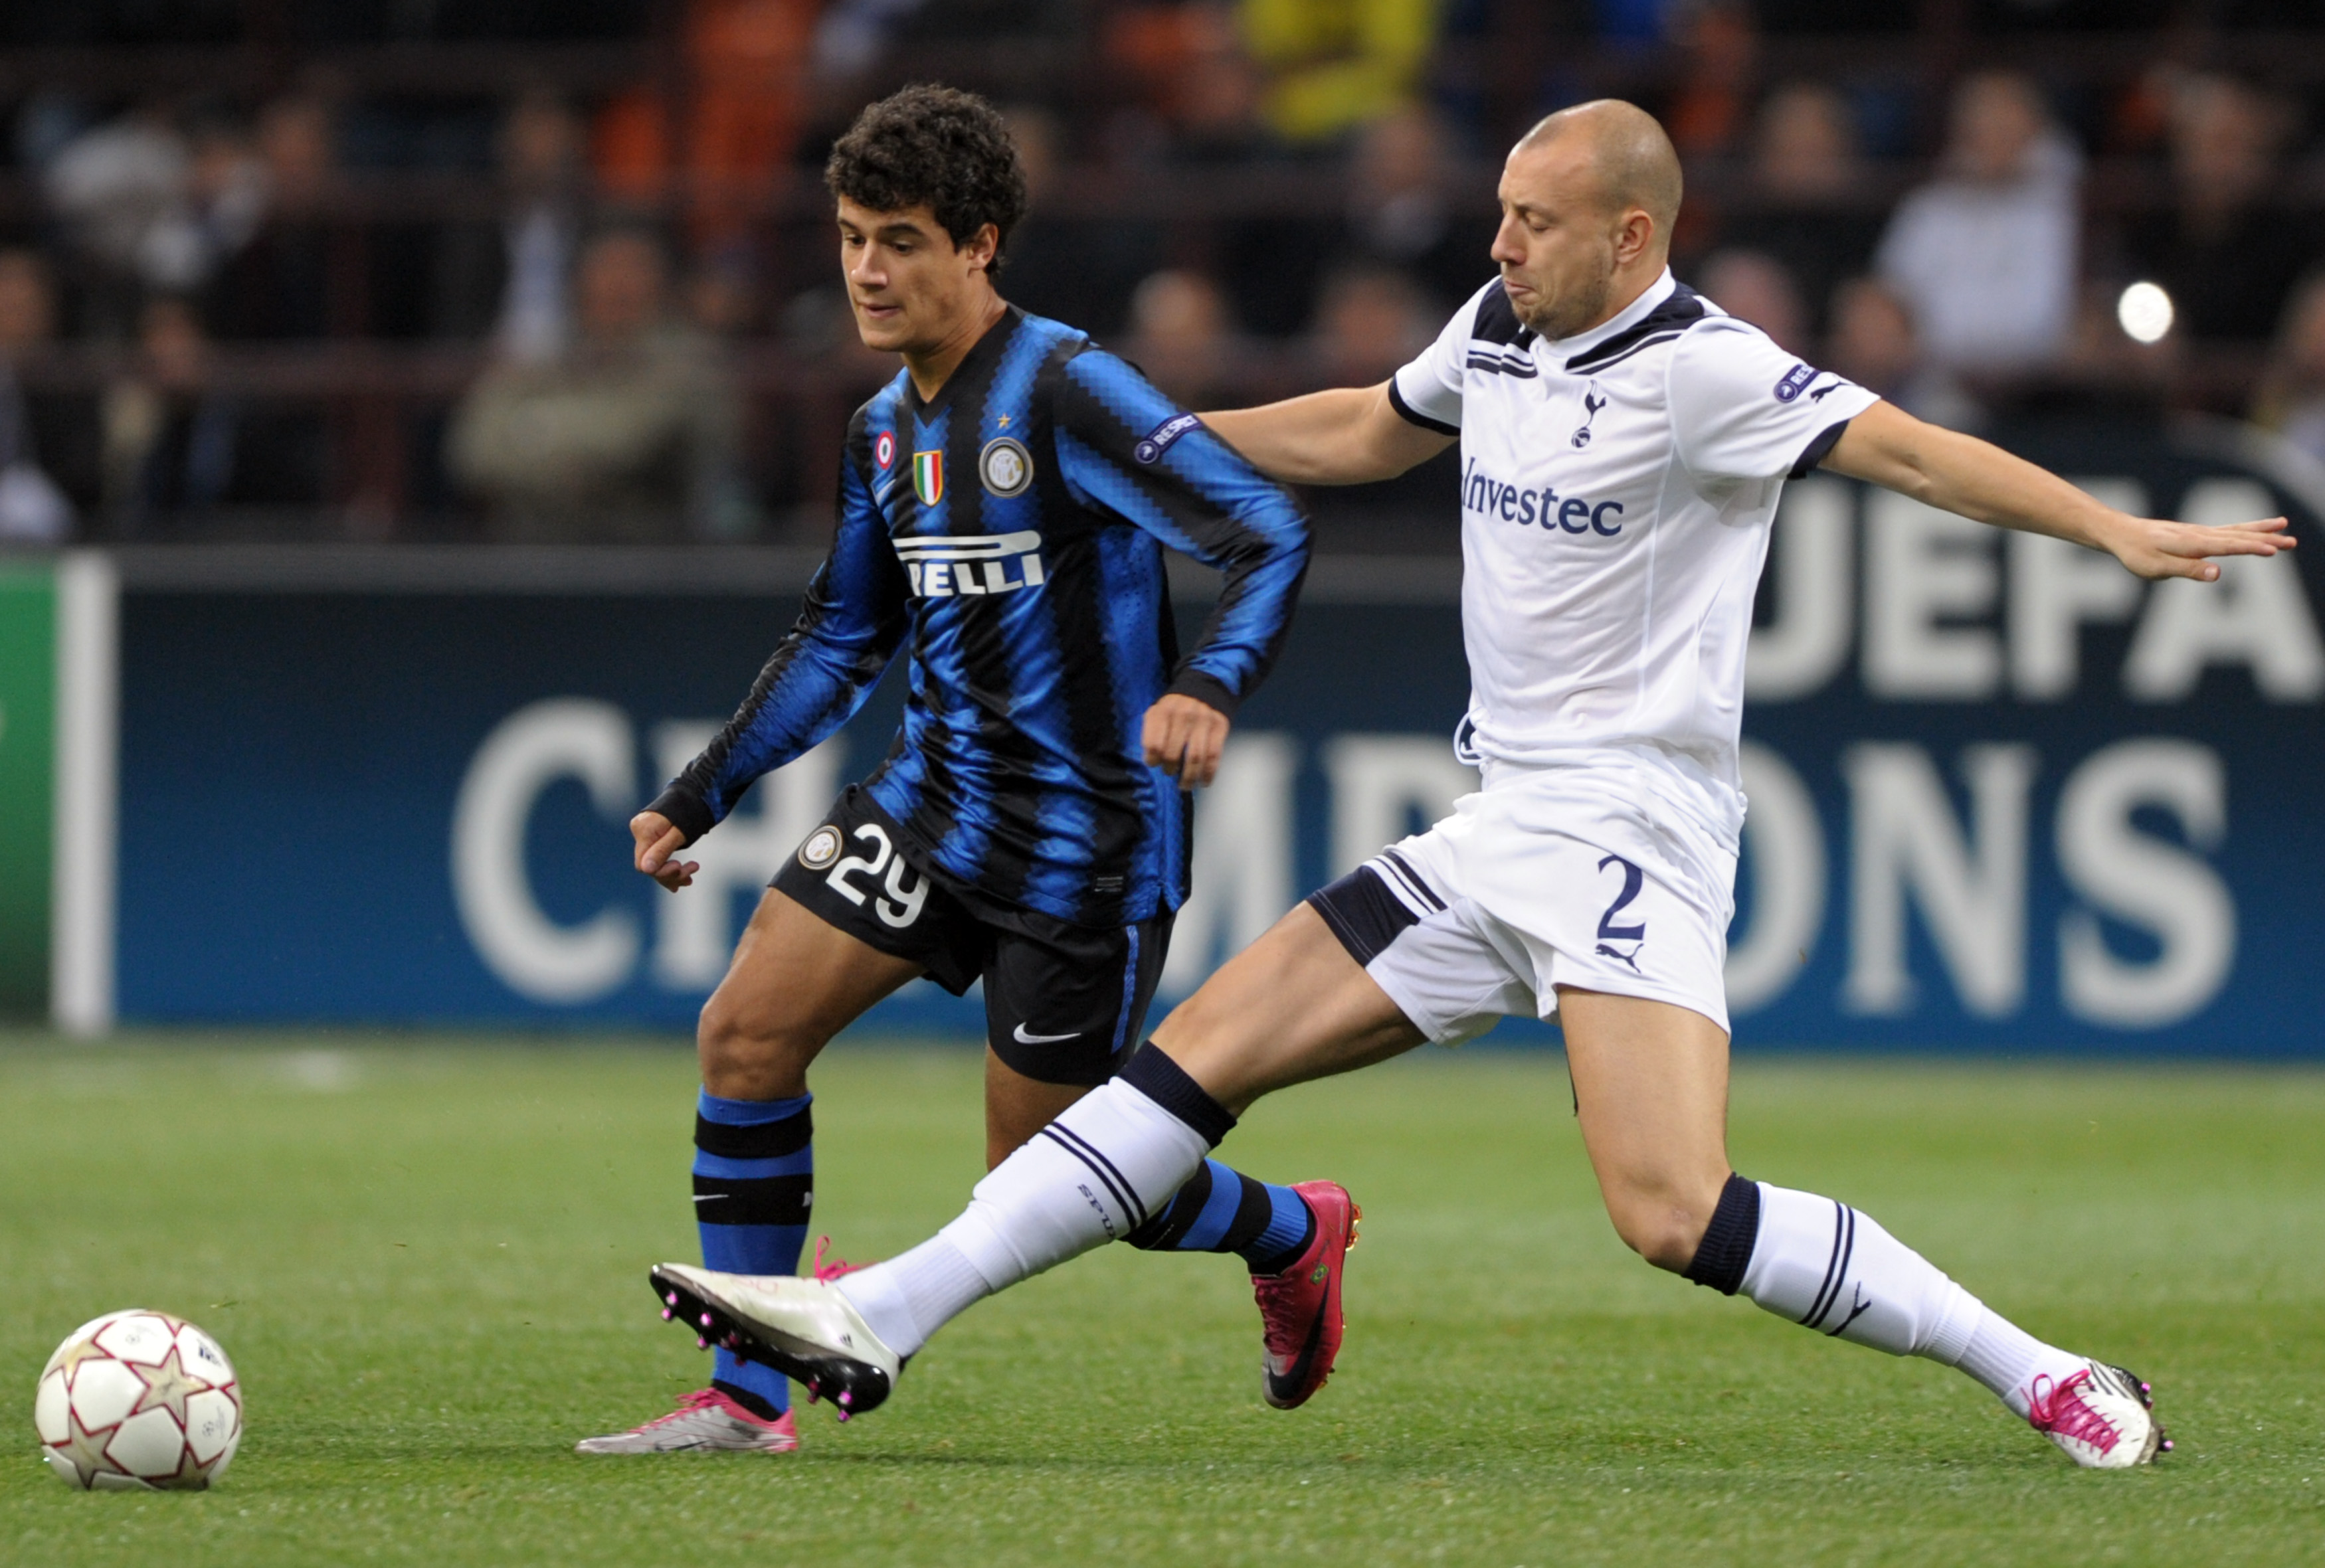 Inter Milan's Brazilian midfielder Philippe Coutinho Correia (L) challenges for the ball with Tottenham's defender Alan Hutton during their UEFA Champions League football match at San Siro stadium in Milan on October 20, 2010. AFP PHOTO / GIUSEPPE CACACE (Photo credit should read GIUSEPPE CACACE/AFP/Getty Images)